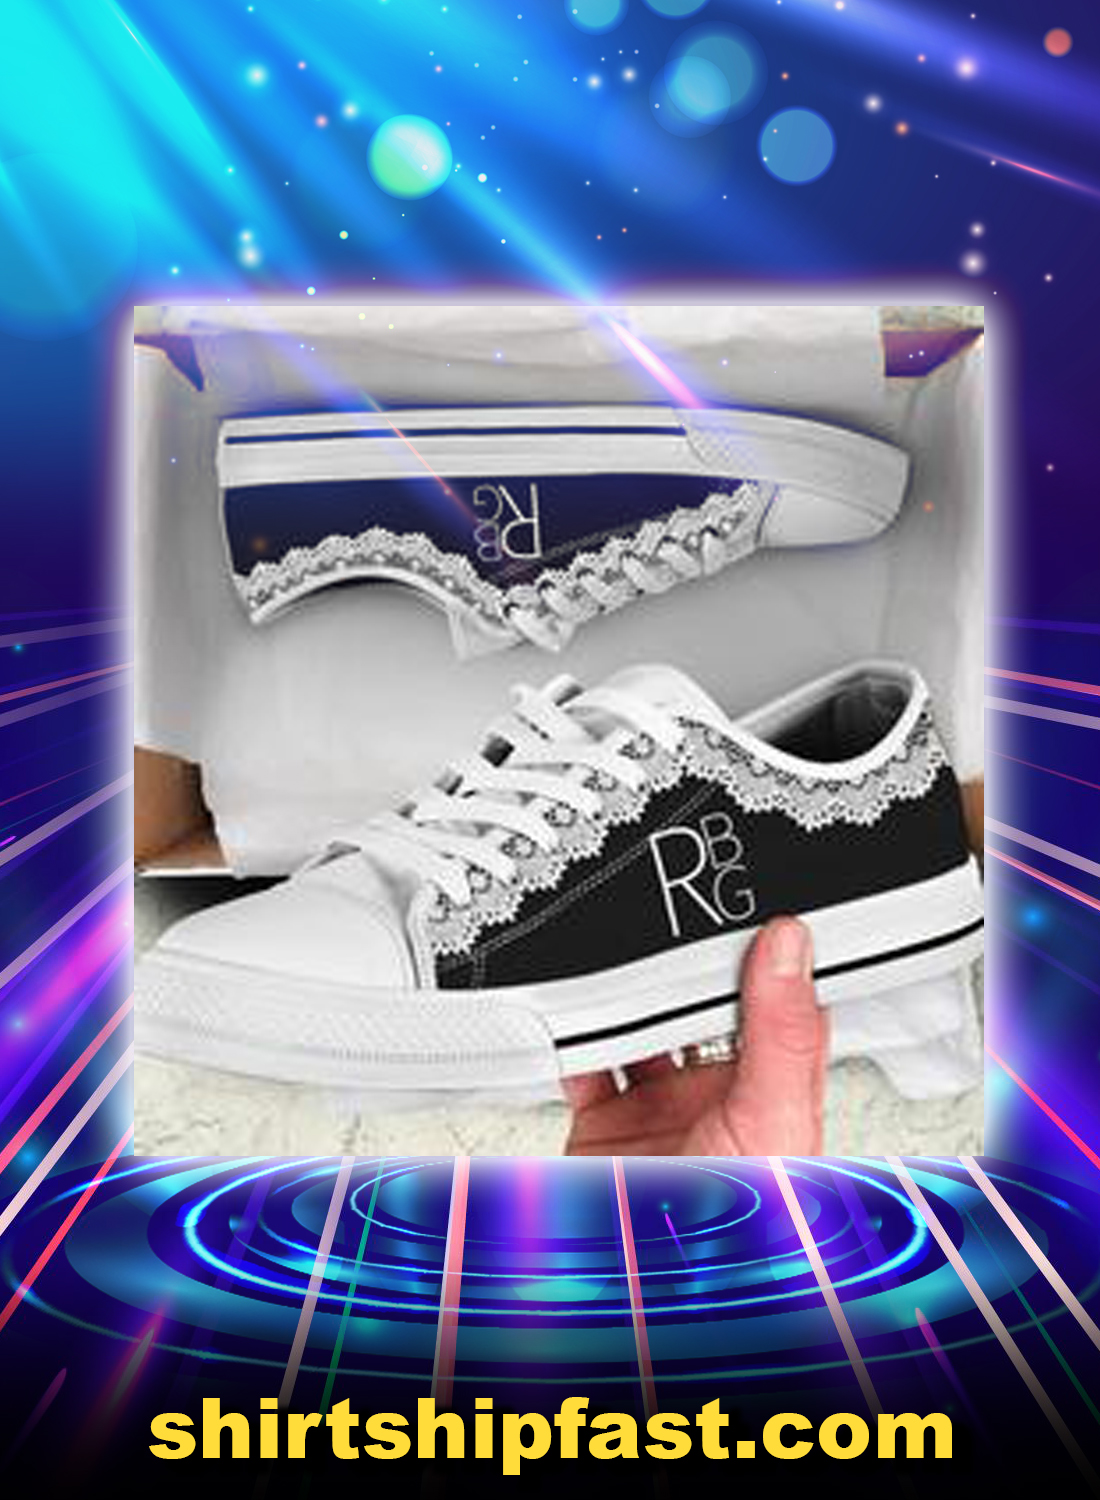 RBG low top shoes - Picture 1